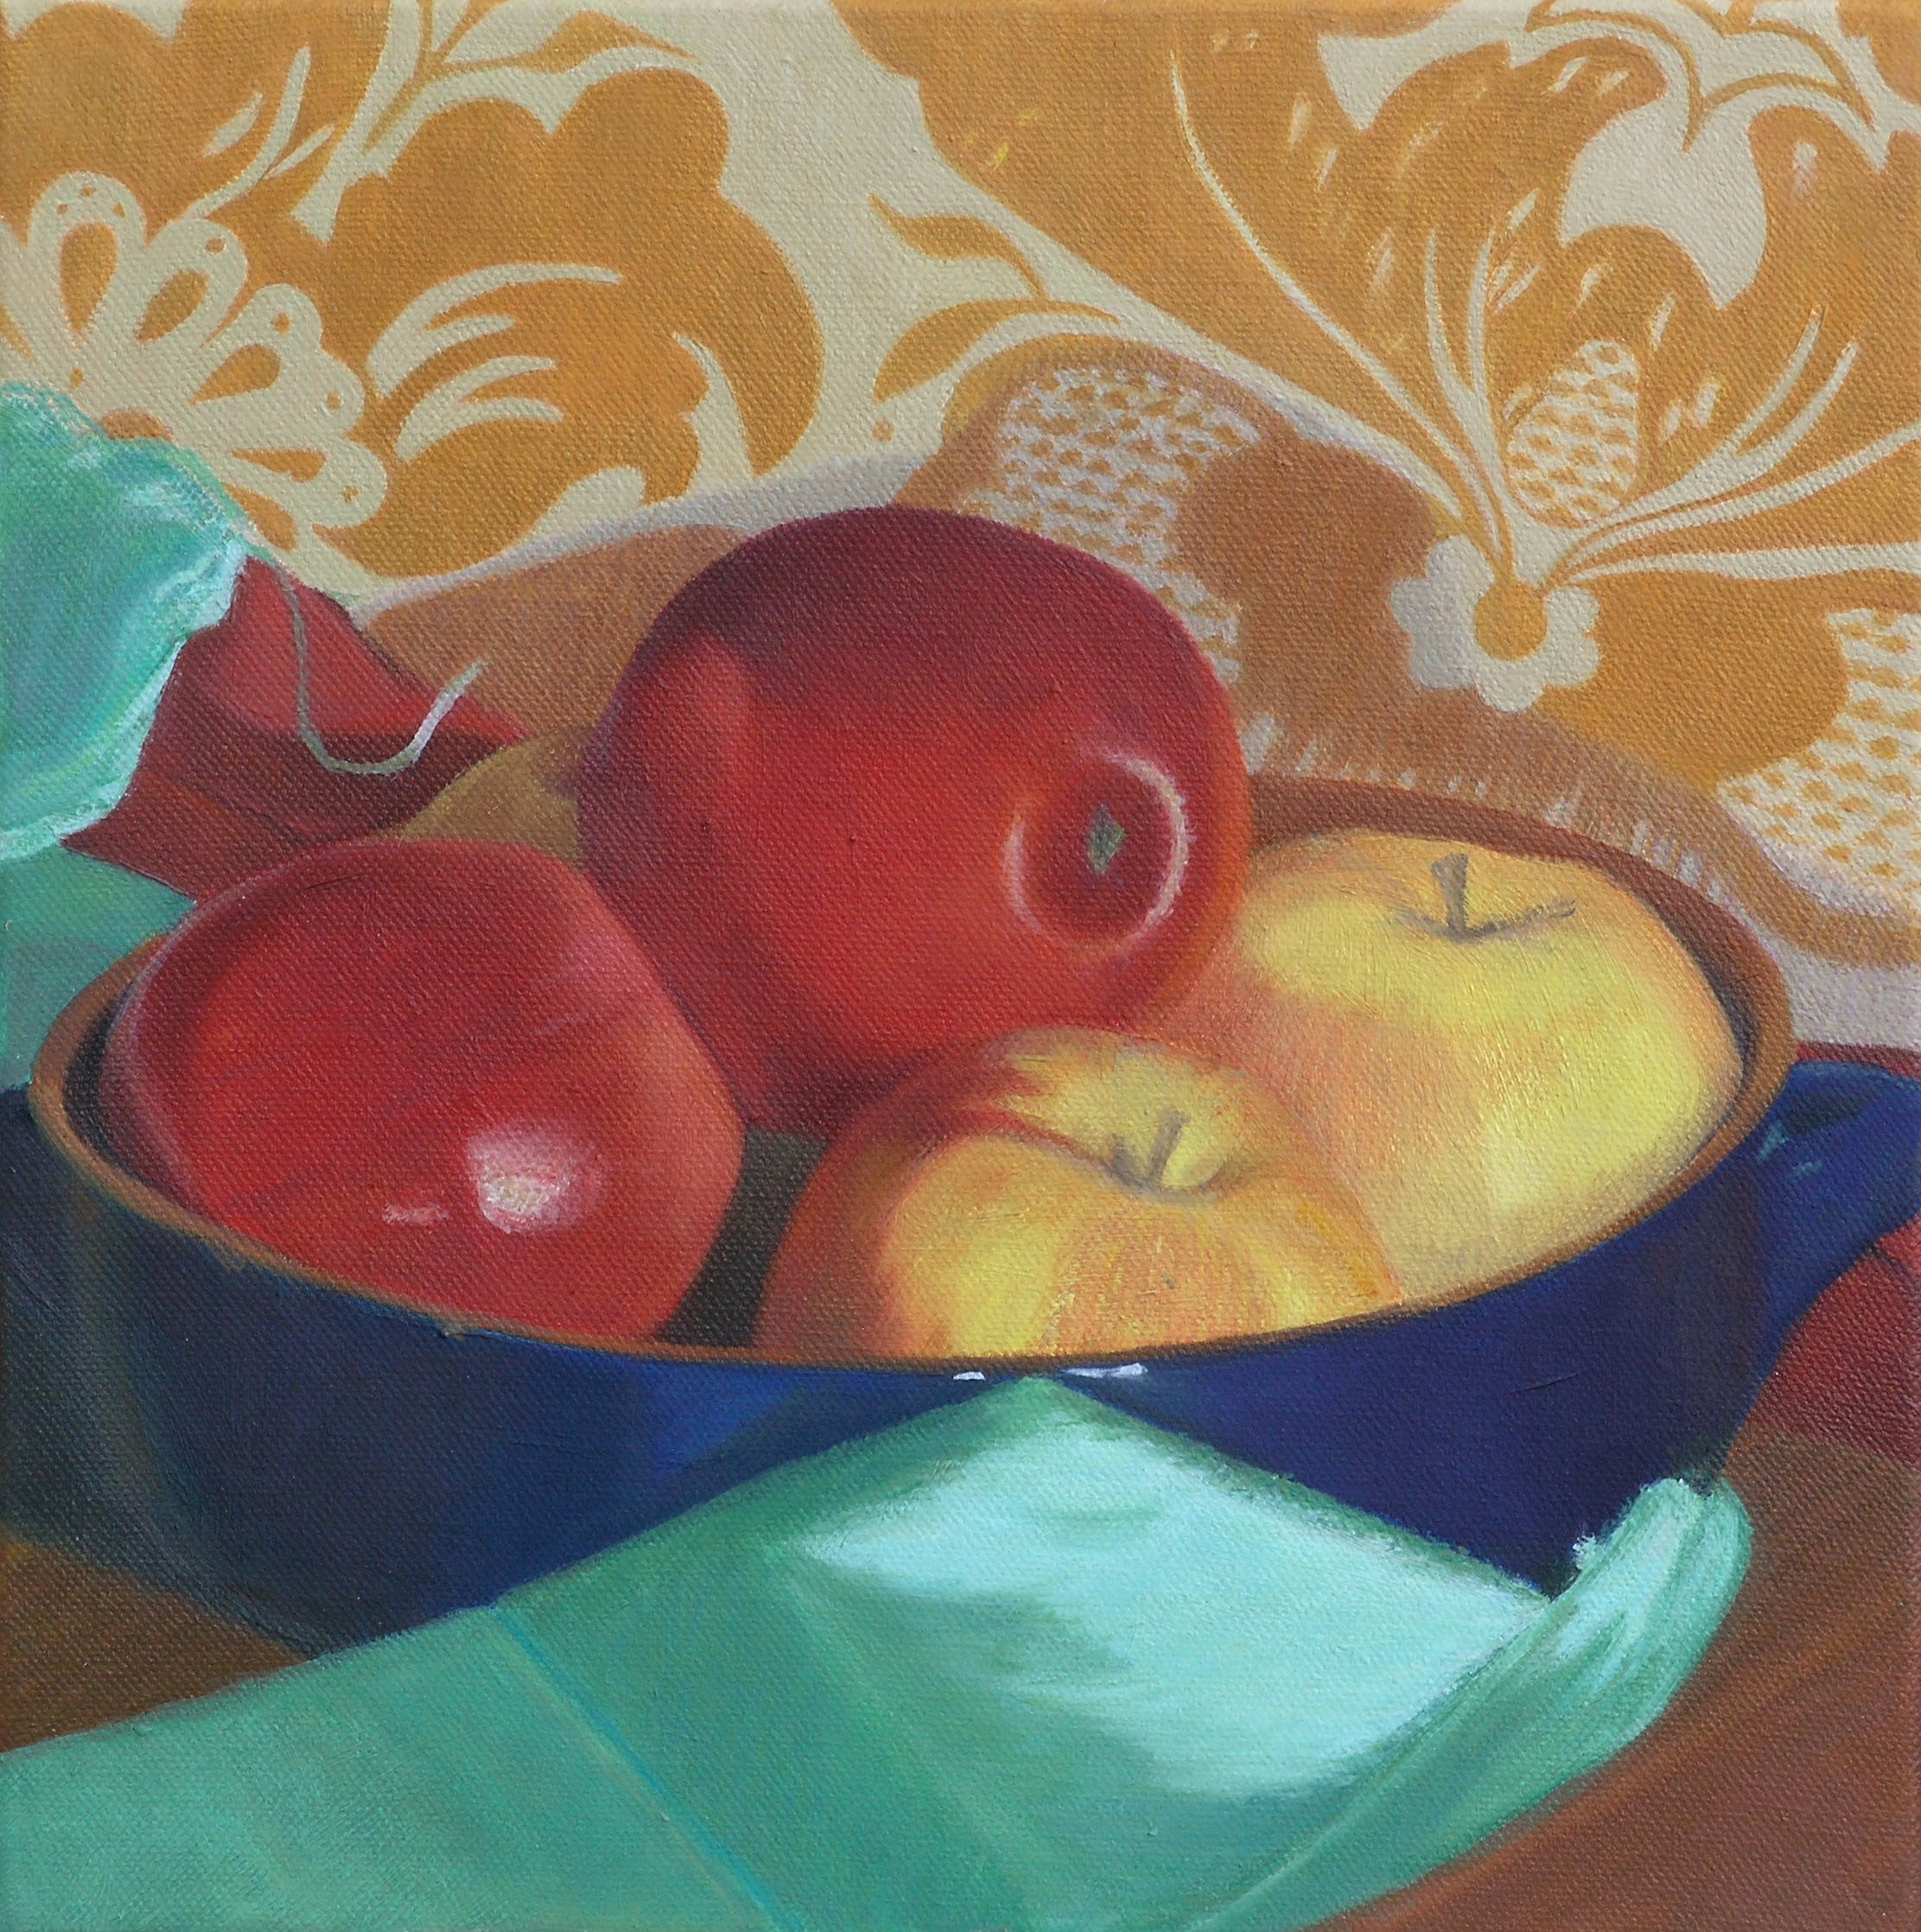 Compostion with apples 1